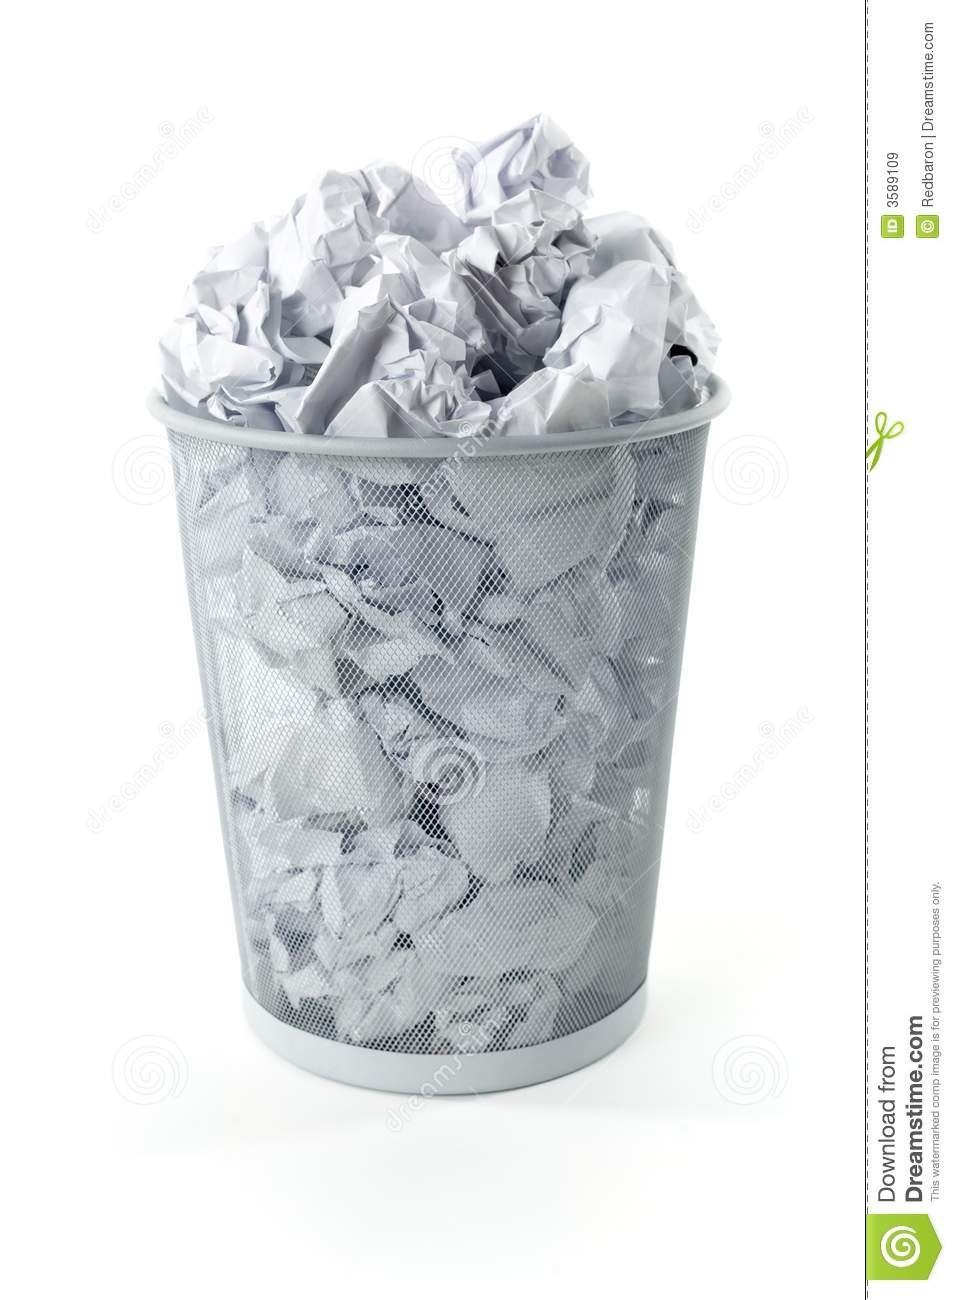 Full Trashcan Stock Image Image Of Isolated Metal